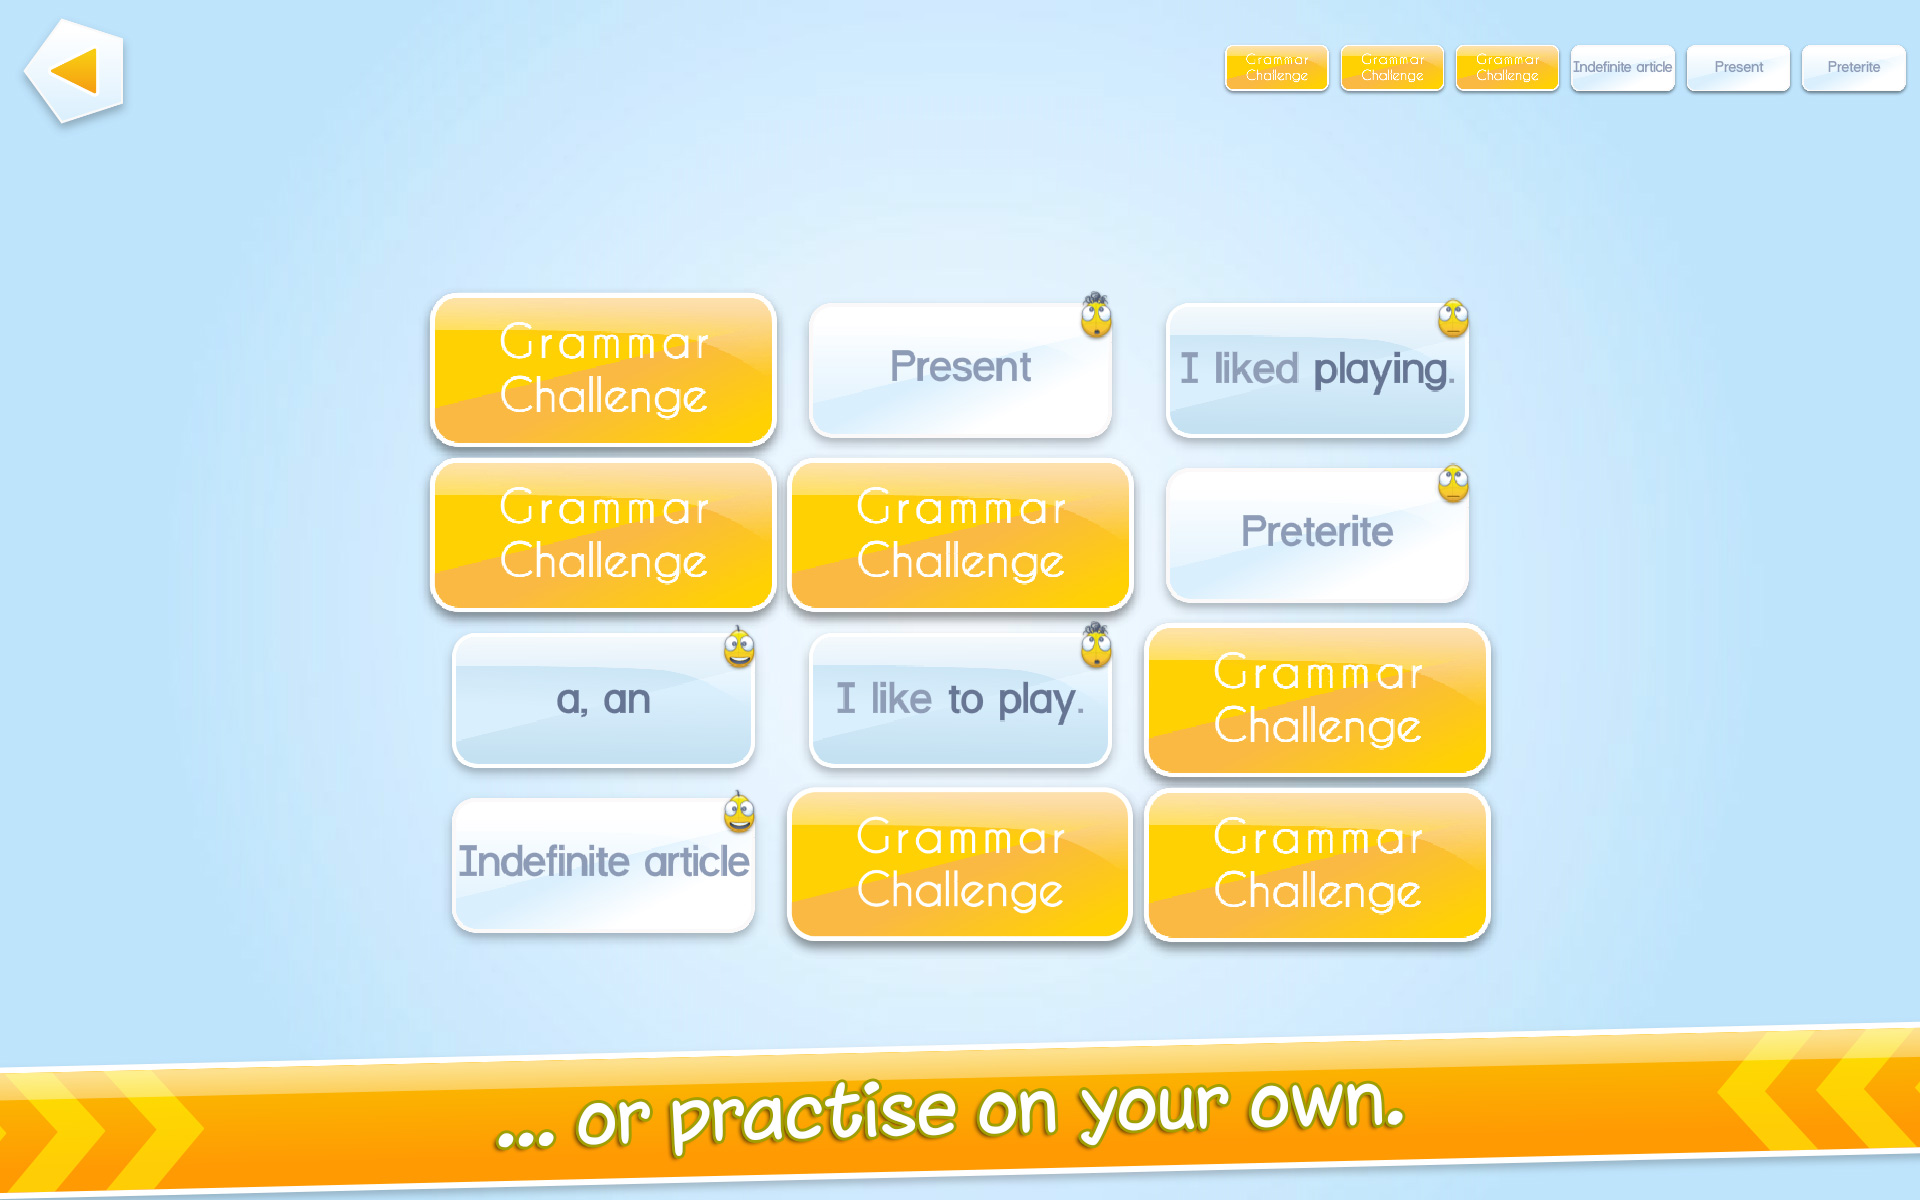 Android_Grammar_Challenge_Train_Your_English_Skills_app_for_kids_Jan_Essig_7